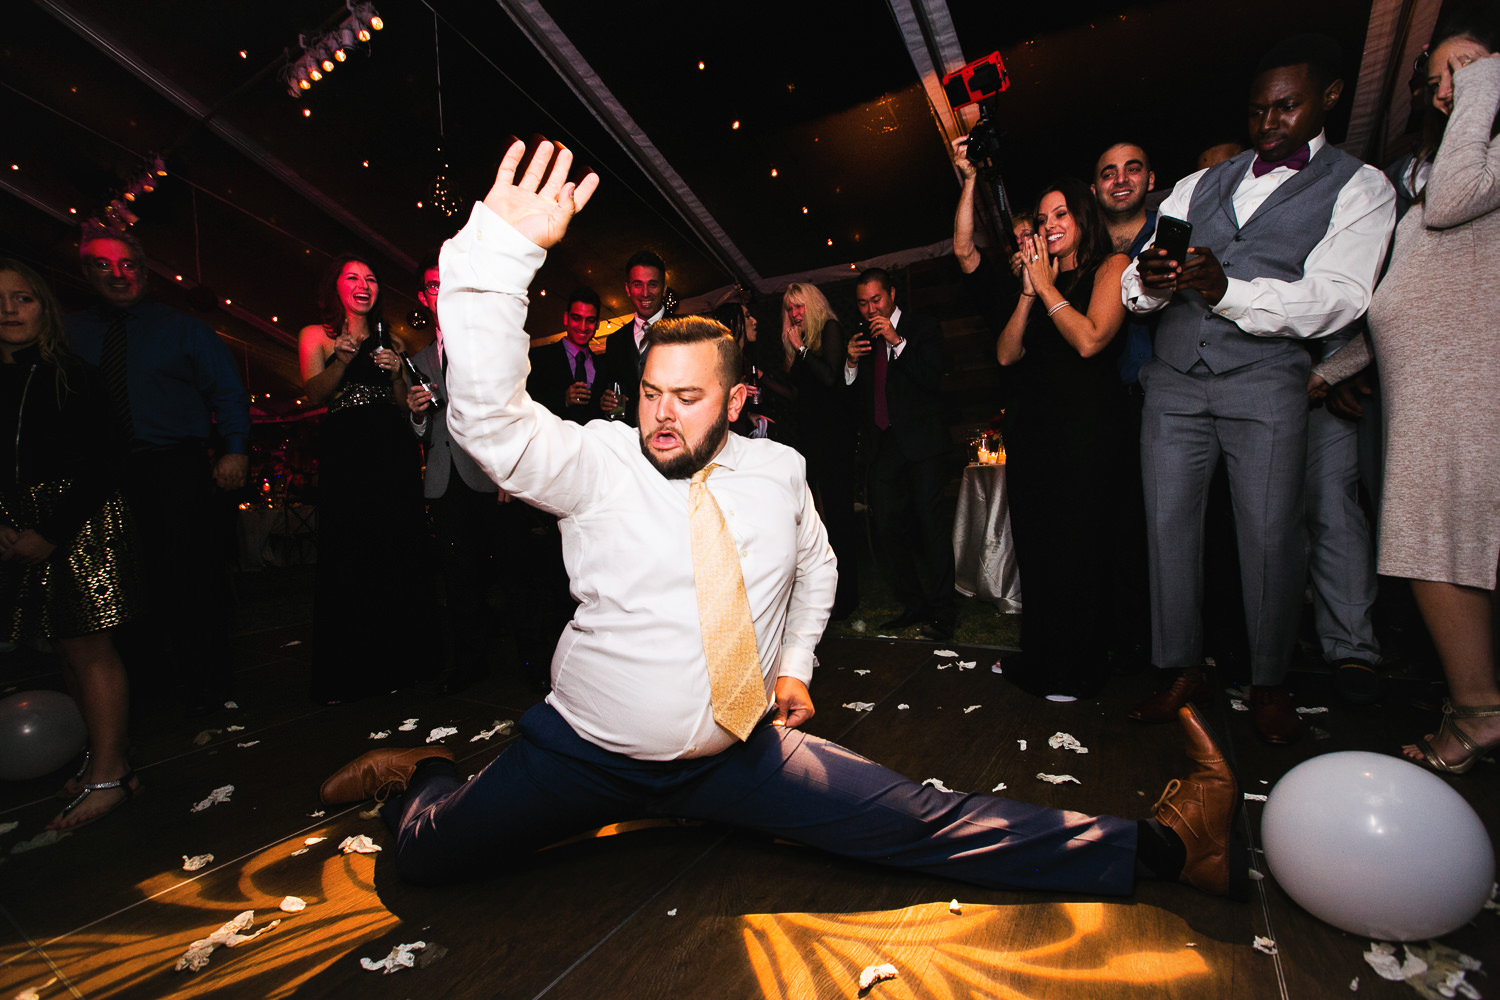 doing the splits at the reception